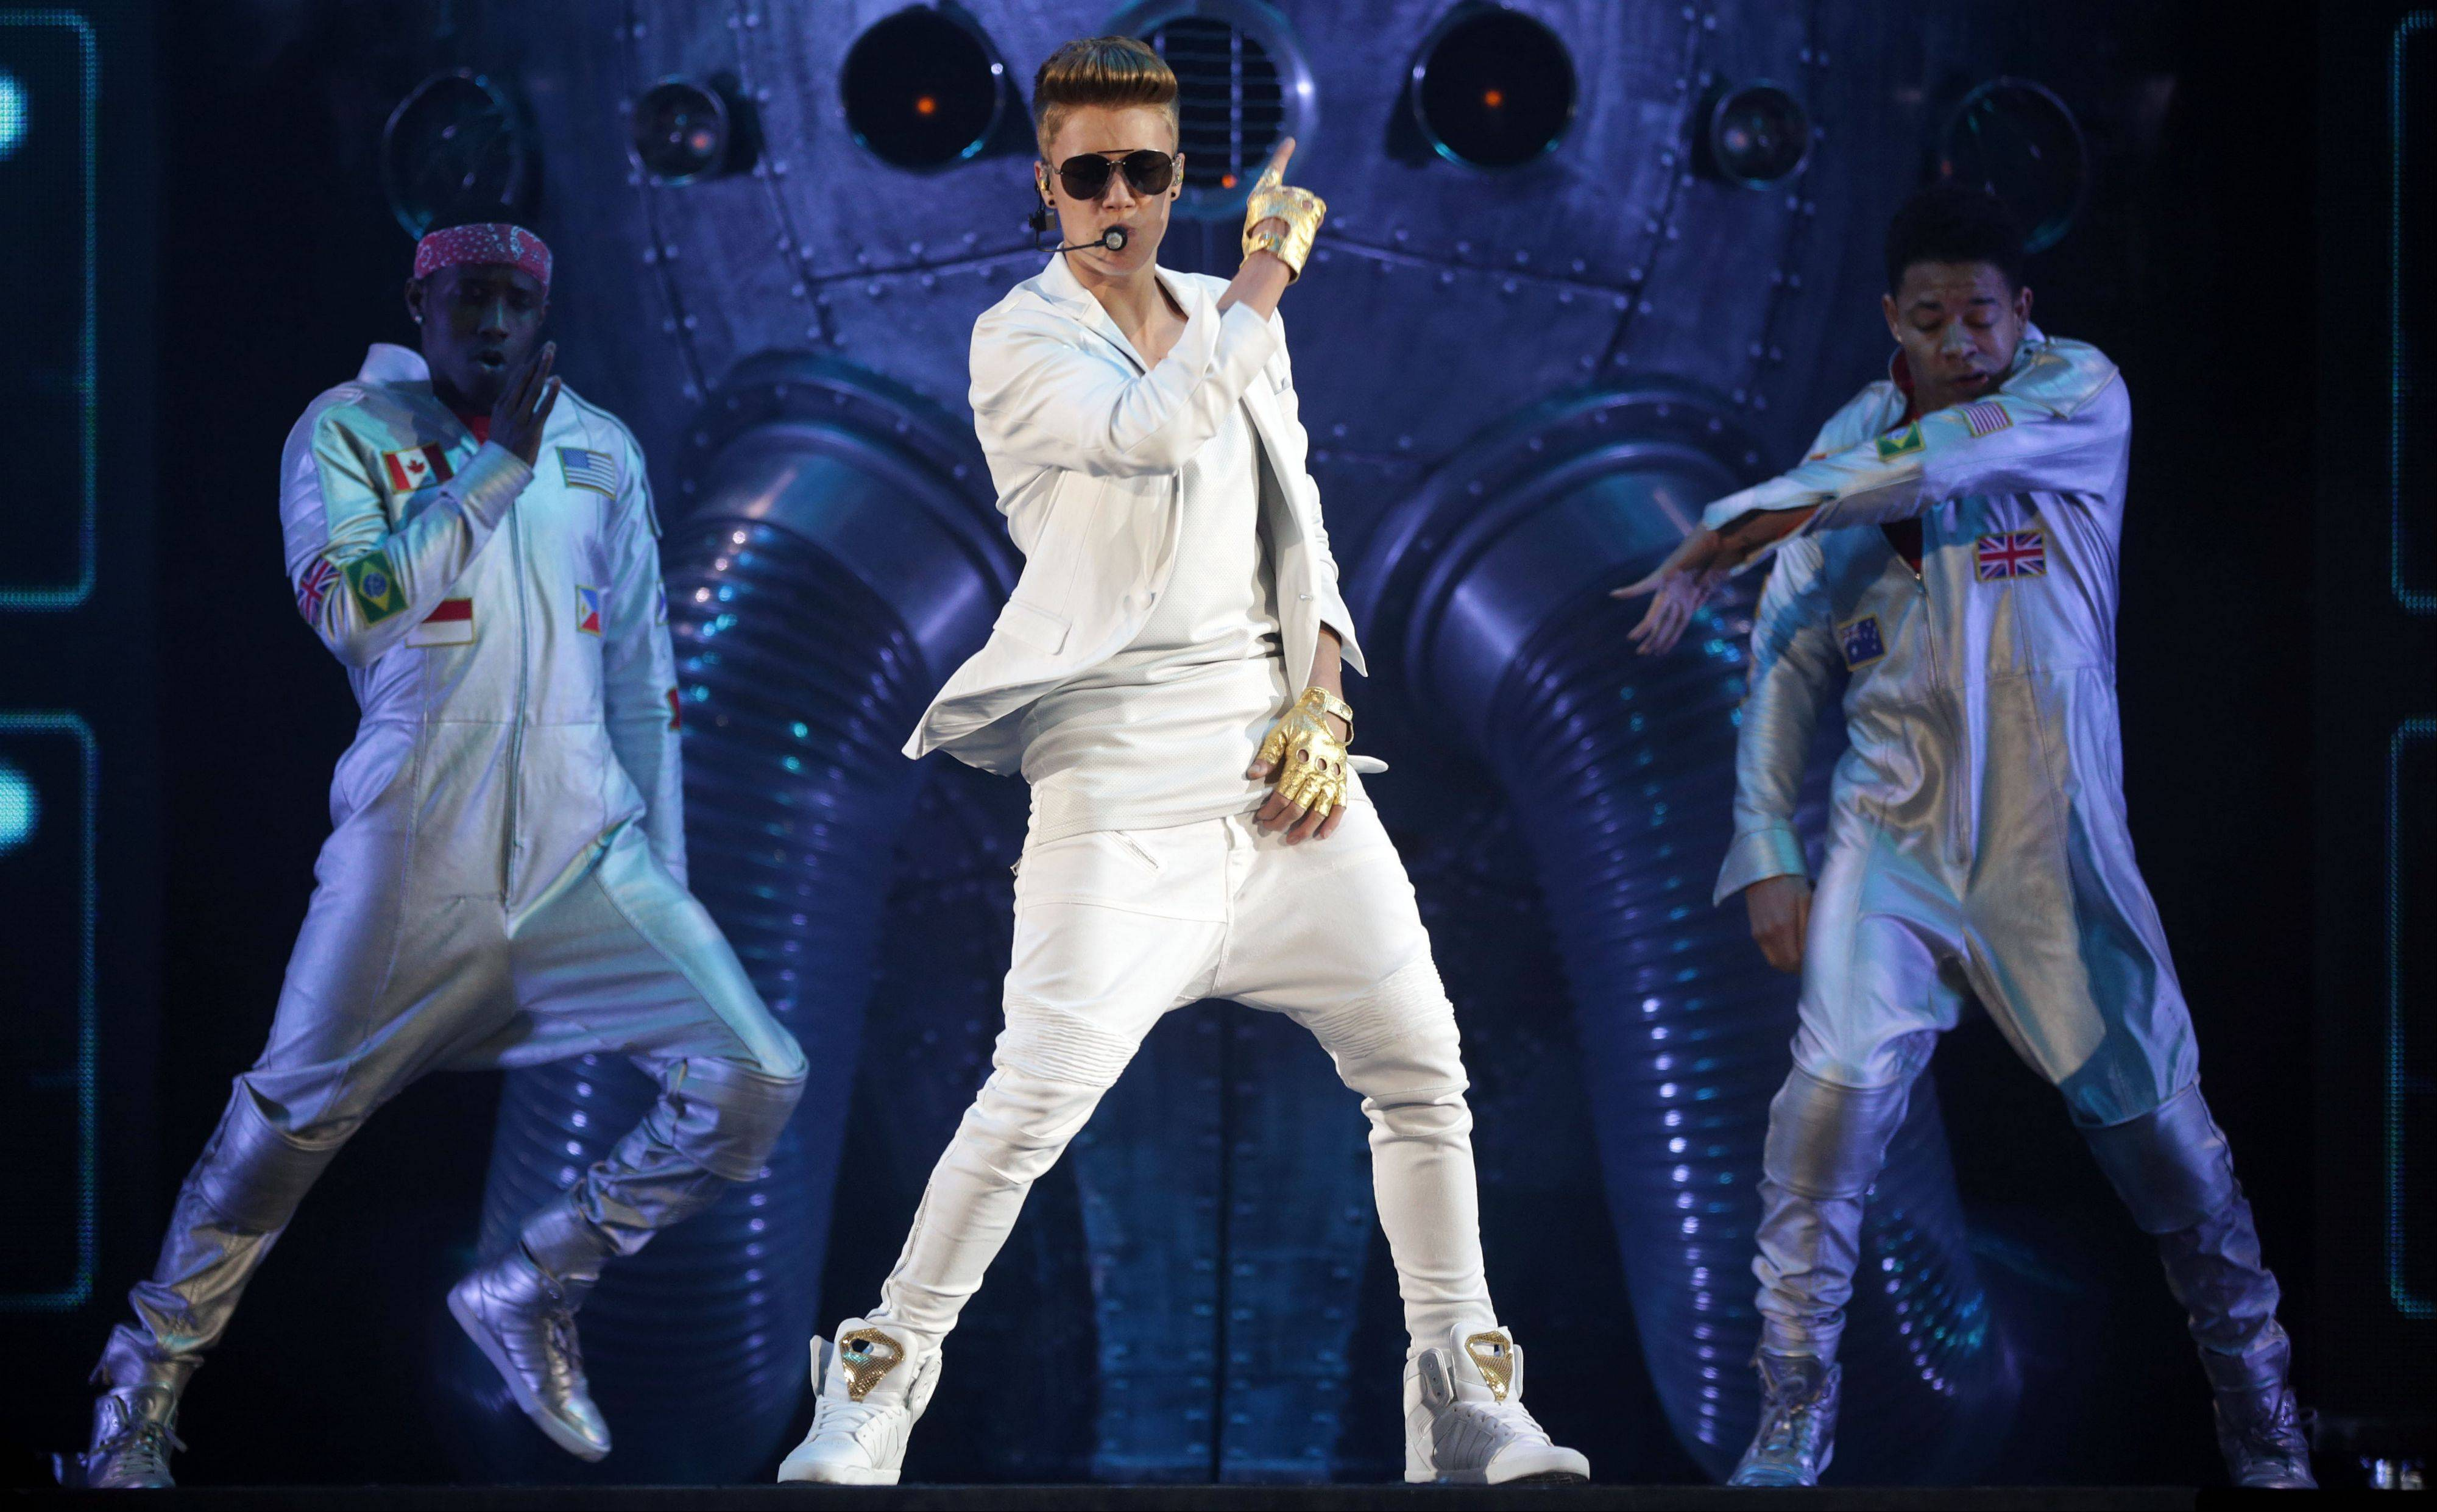 Canadian singer Justin Bieber performs on stage during the �I Believe Tour � in Munich. A German official says Bieber had to leave a monkey in quarantine after arriving in the country last week without the necessary papers for the animal.